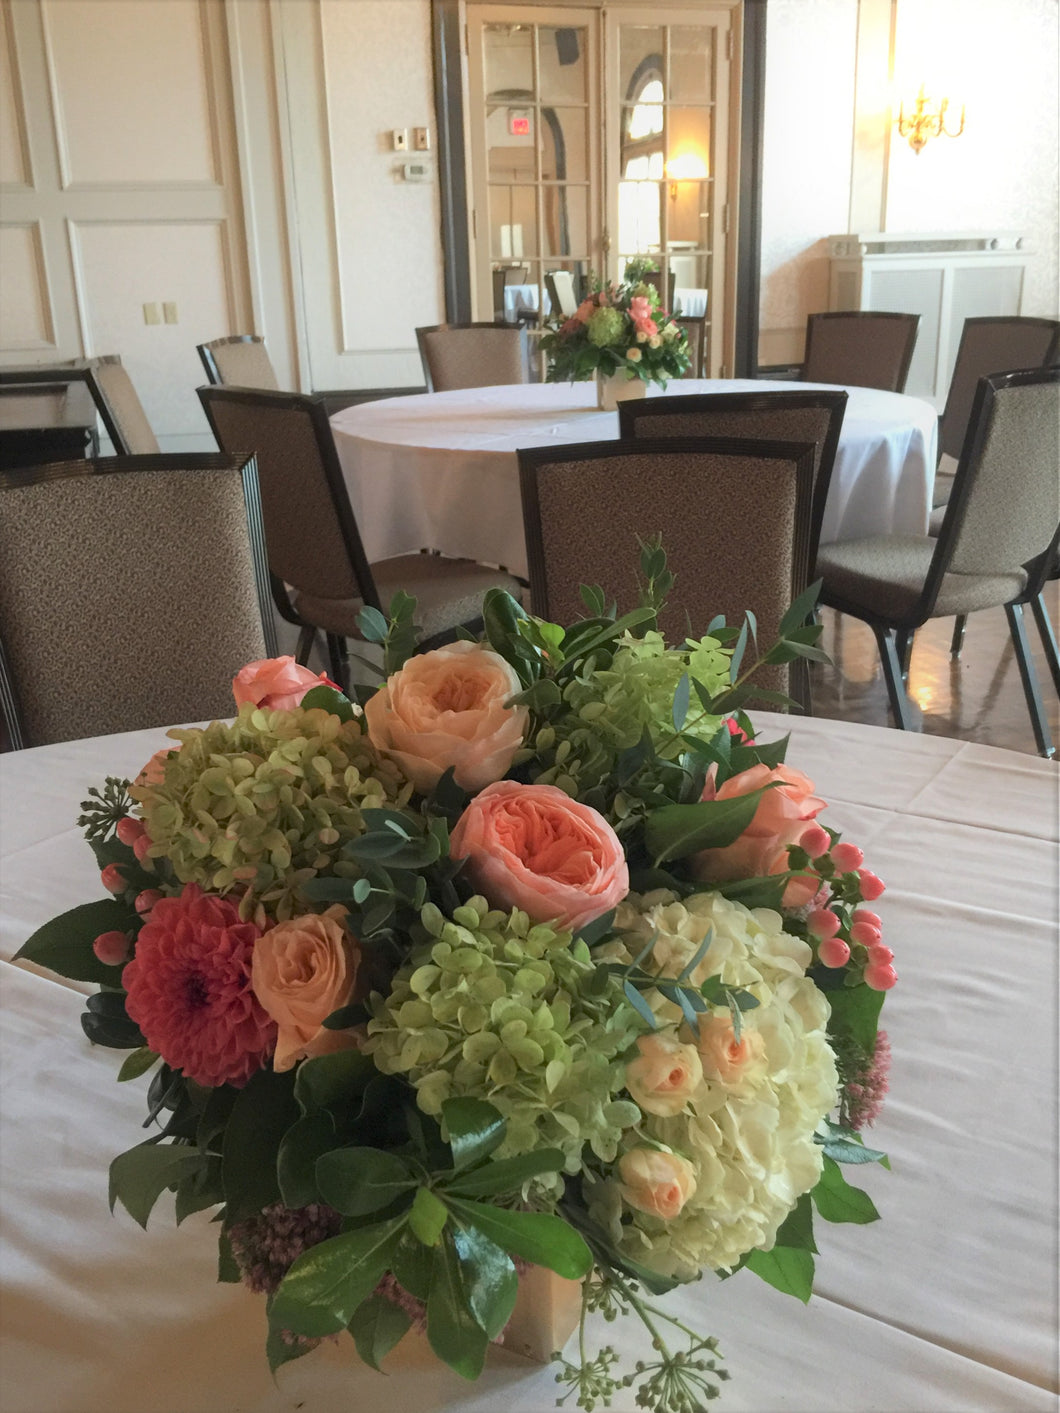 E44 - Whites, Peaches, Corals and Gold Centerpiece - Flowerplustoronto